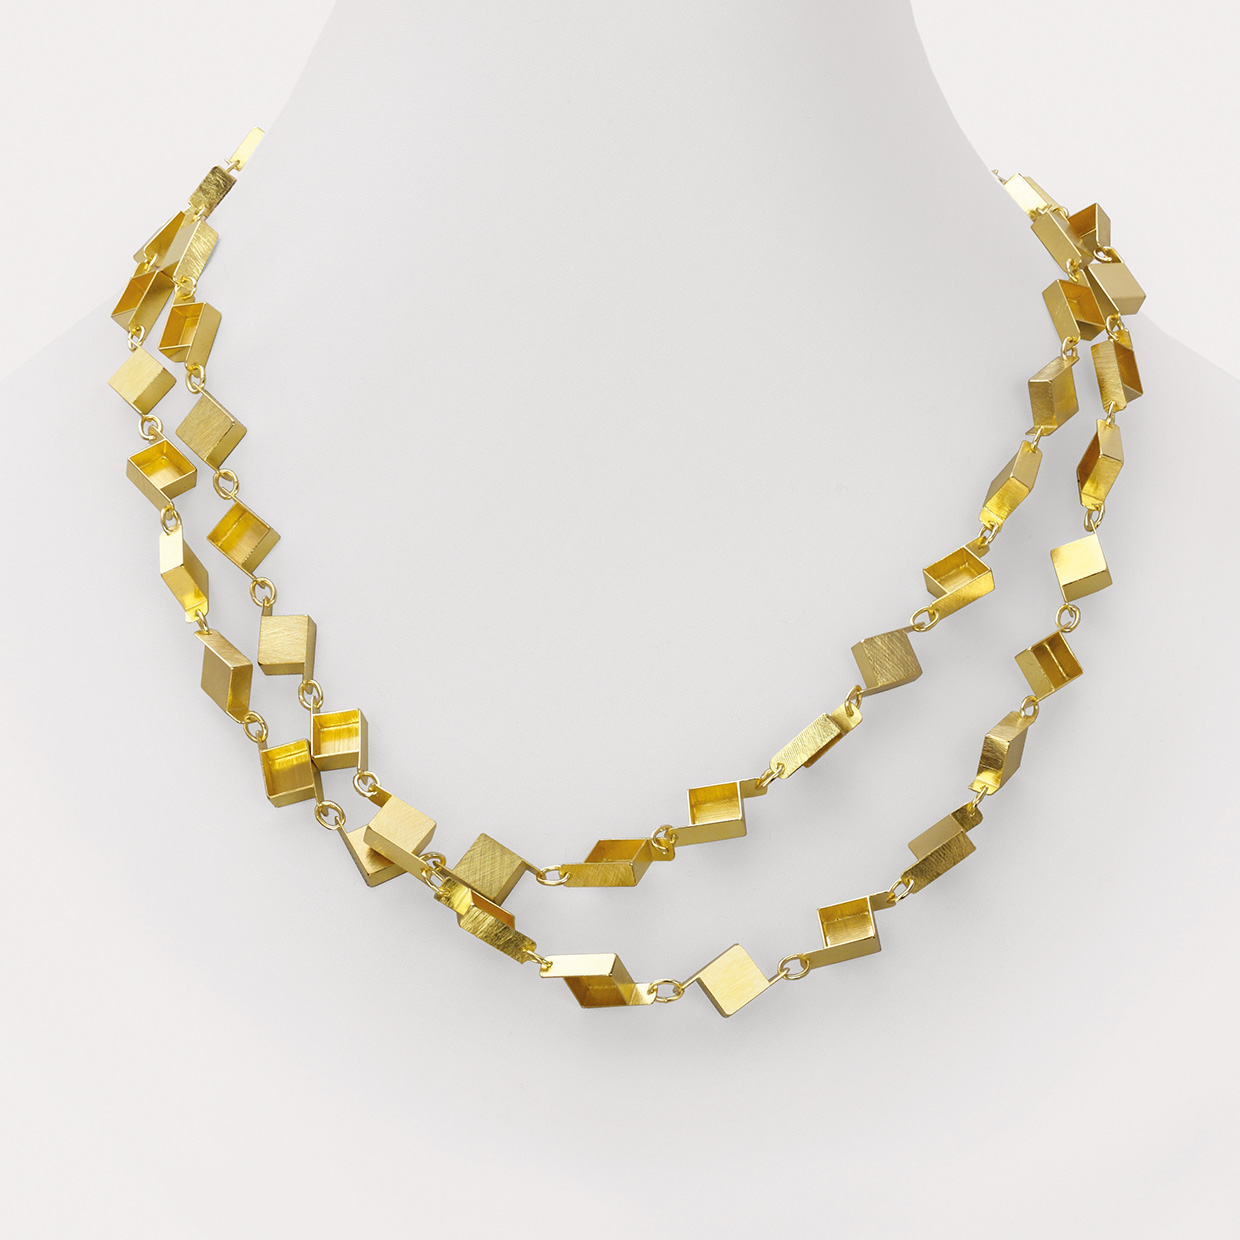 necklace  2015  gold  750  1104x10x4  mm